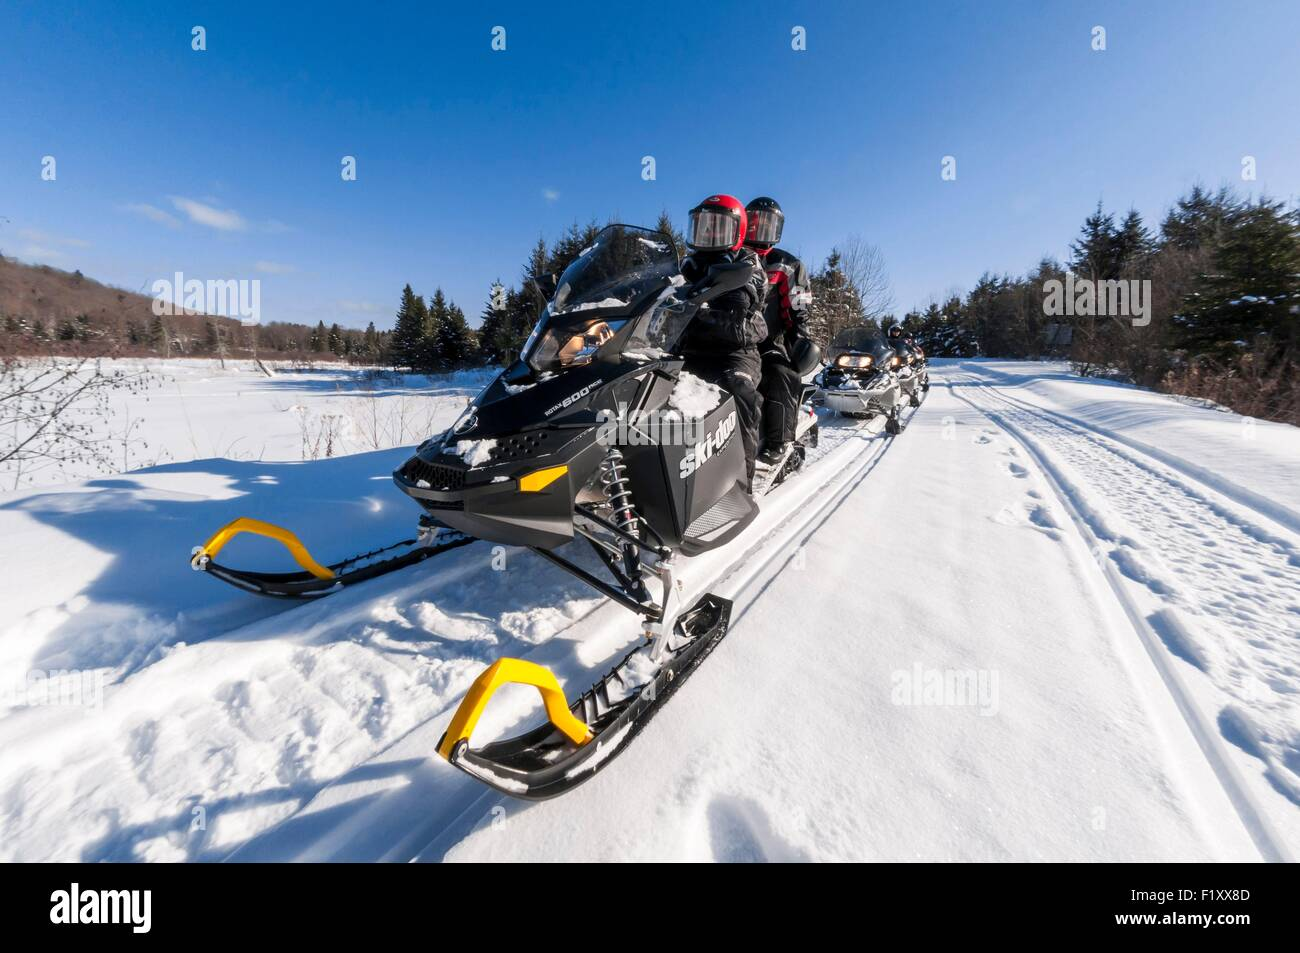 Canada, Quebec, Outaouais, snowmobile in Papineau Park and Kenauk Nature - Stock Image